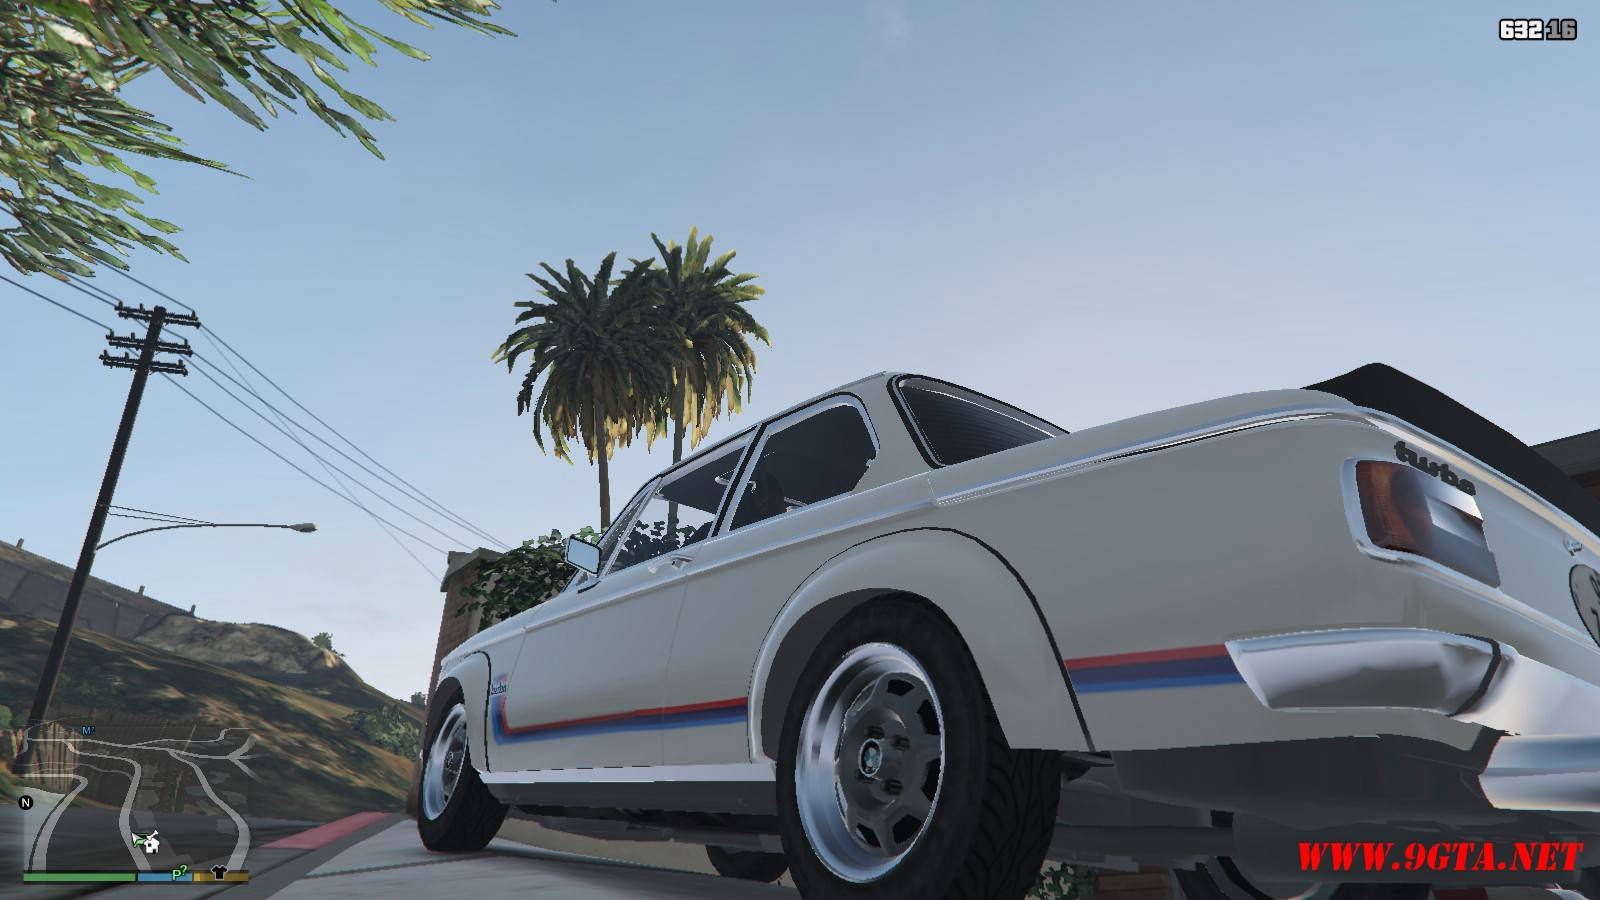 2002 BMW Turbo Mod For GTA5 (4)